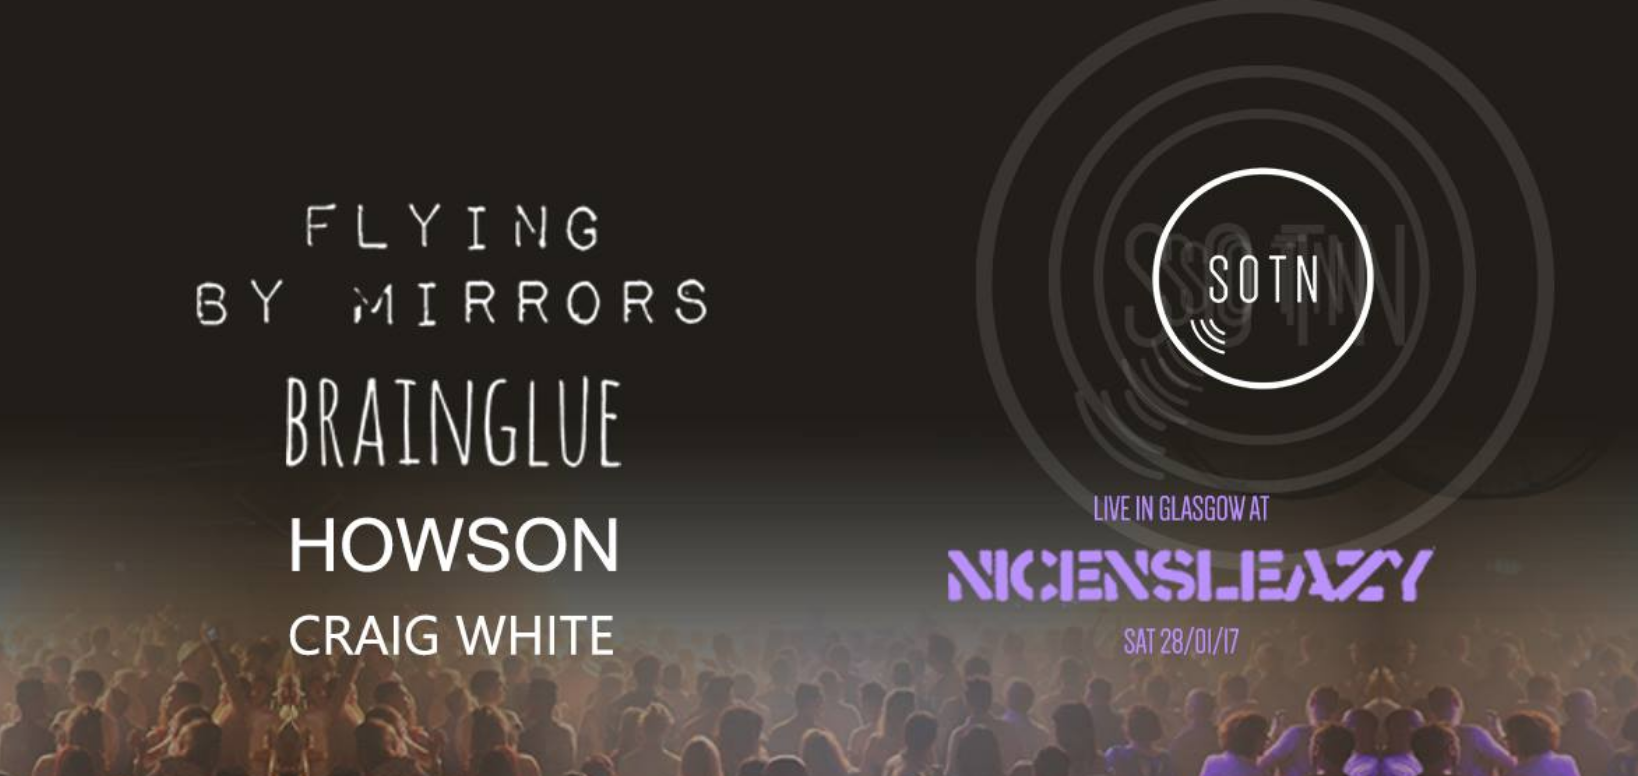 Scruff Of the Neck Presents : Flying By Mirrors + Howson + Brainglue + Craig White